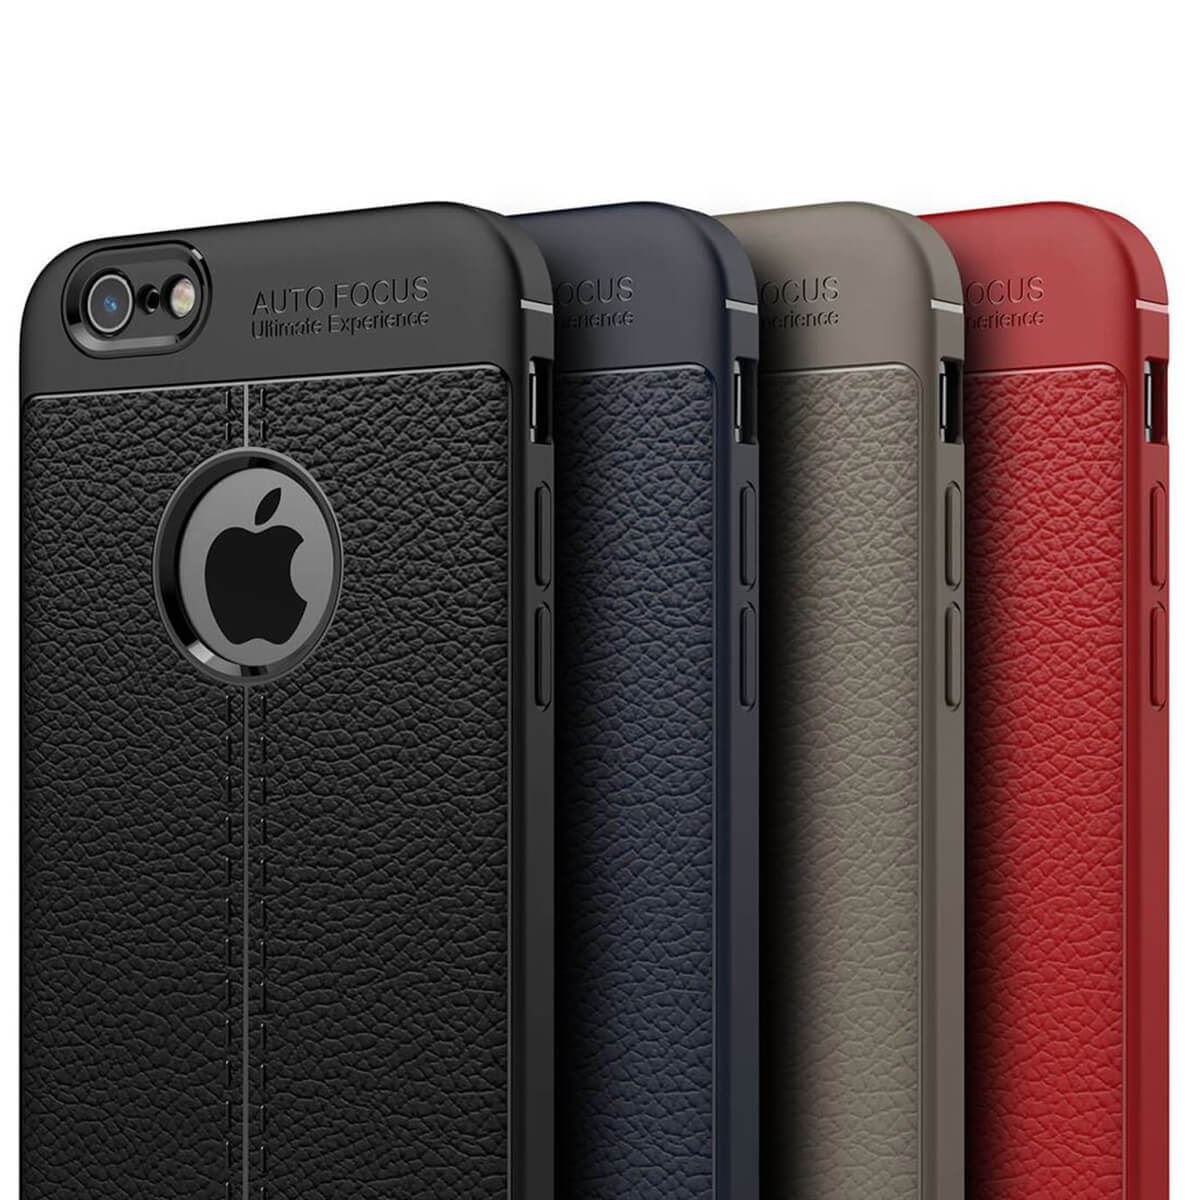 Protective-Leather-Case-For-Apple-iPhone-Luxury-Shockproof-Pattern-Soft-TPU thumbnail 21